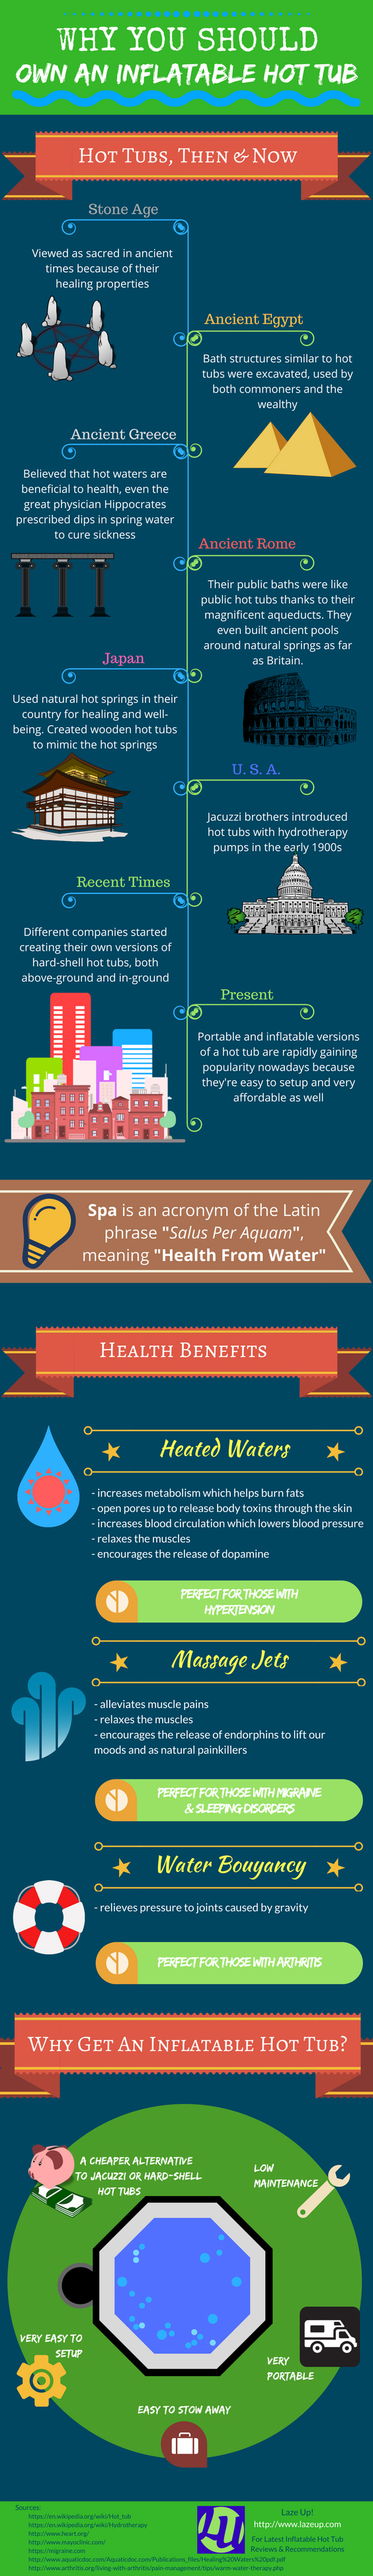 Inflatable Hot Tub Review Infographic